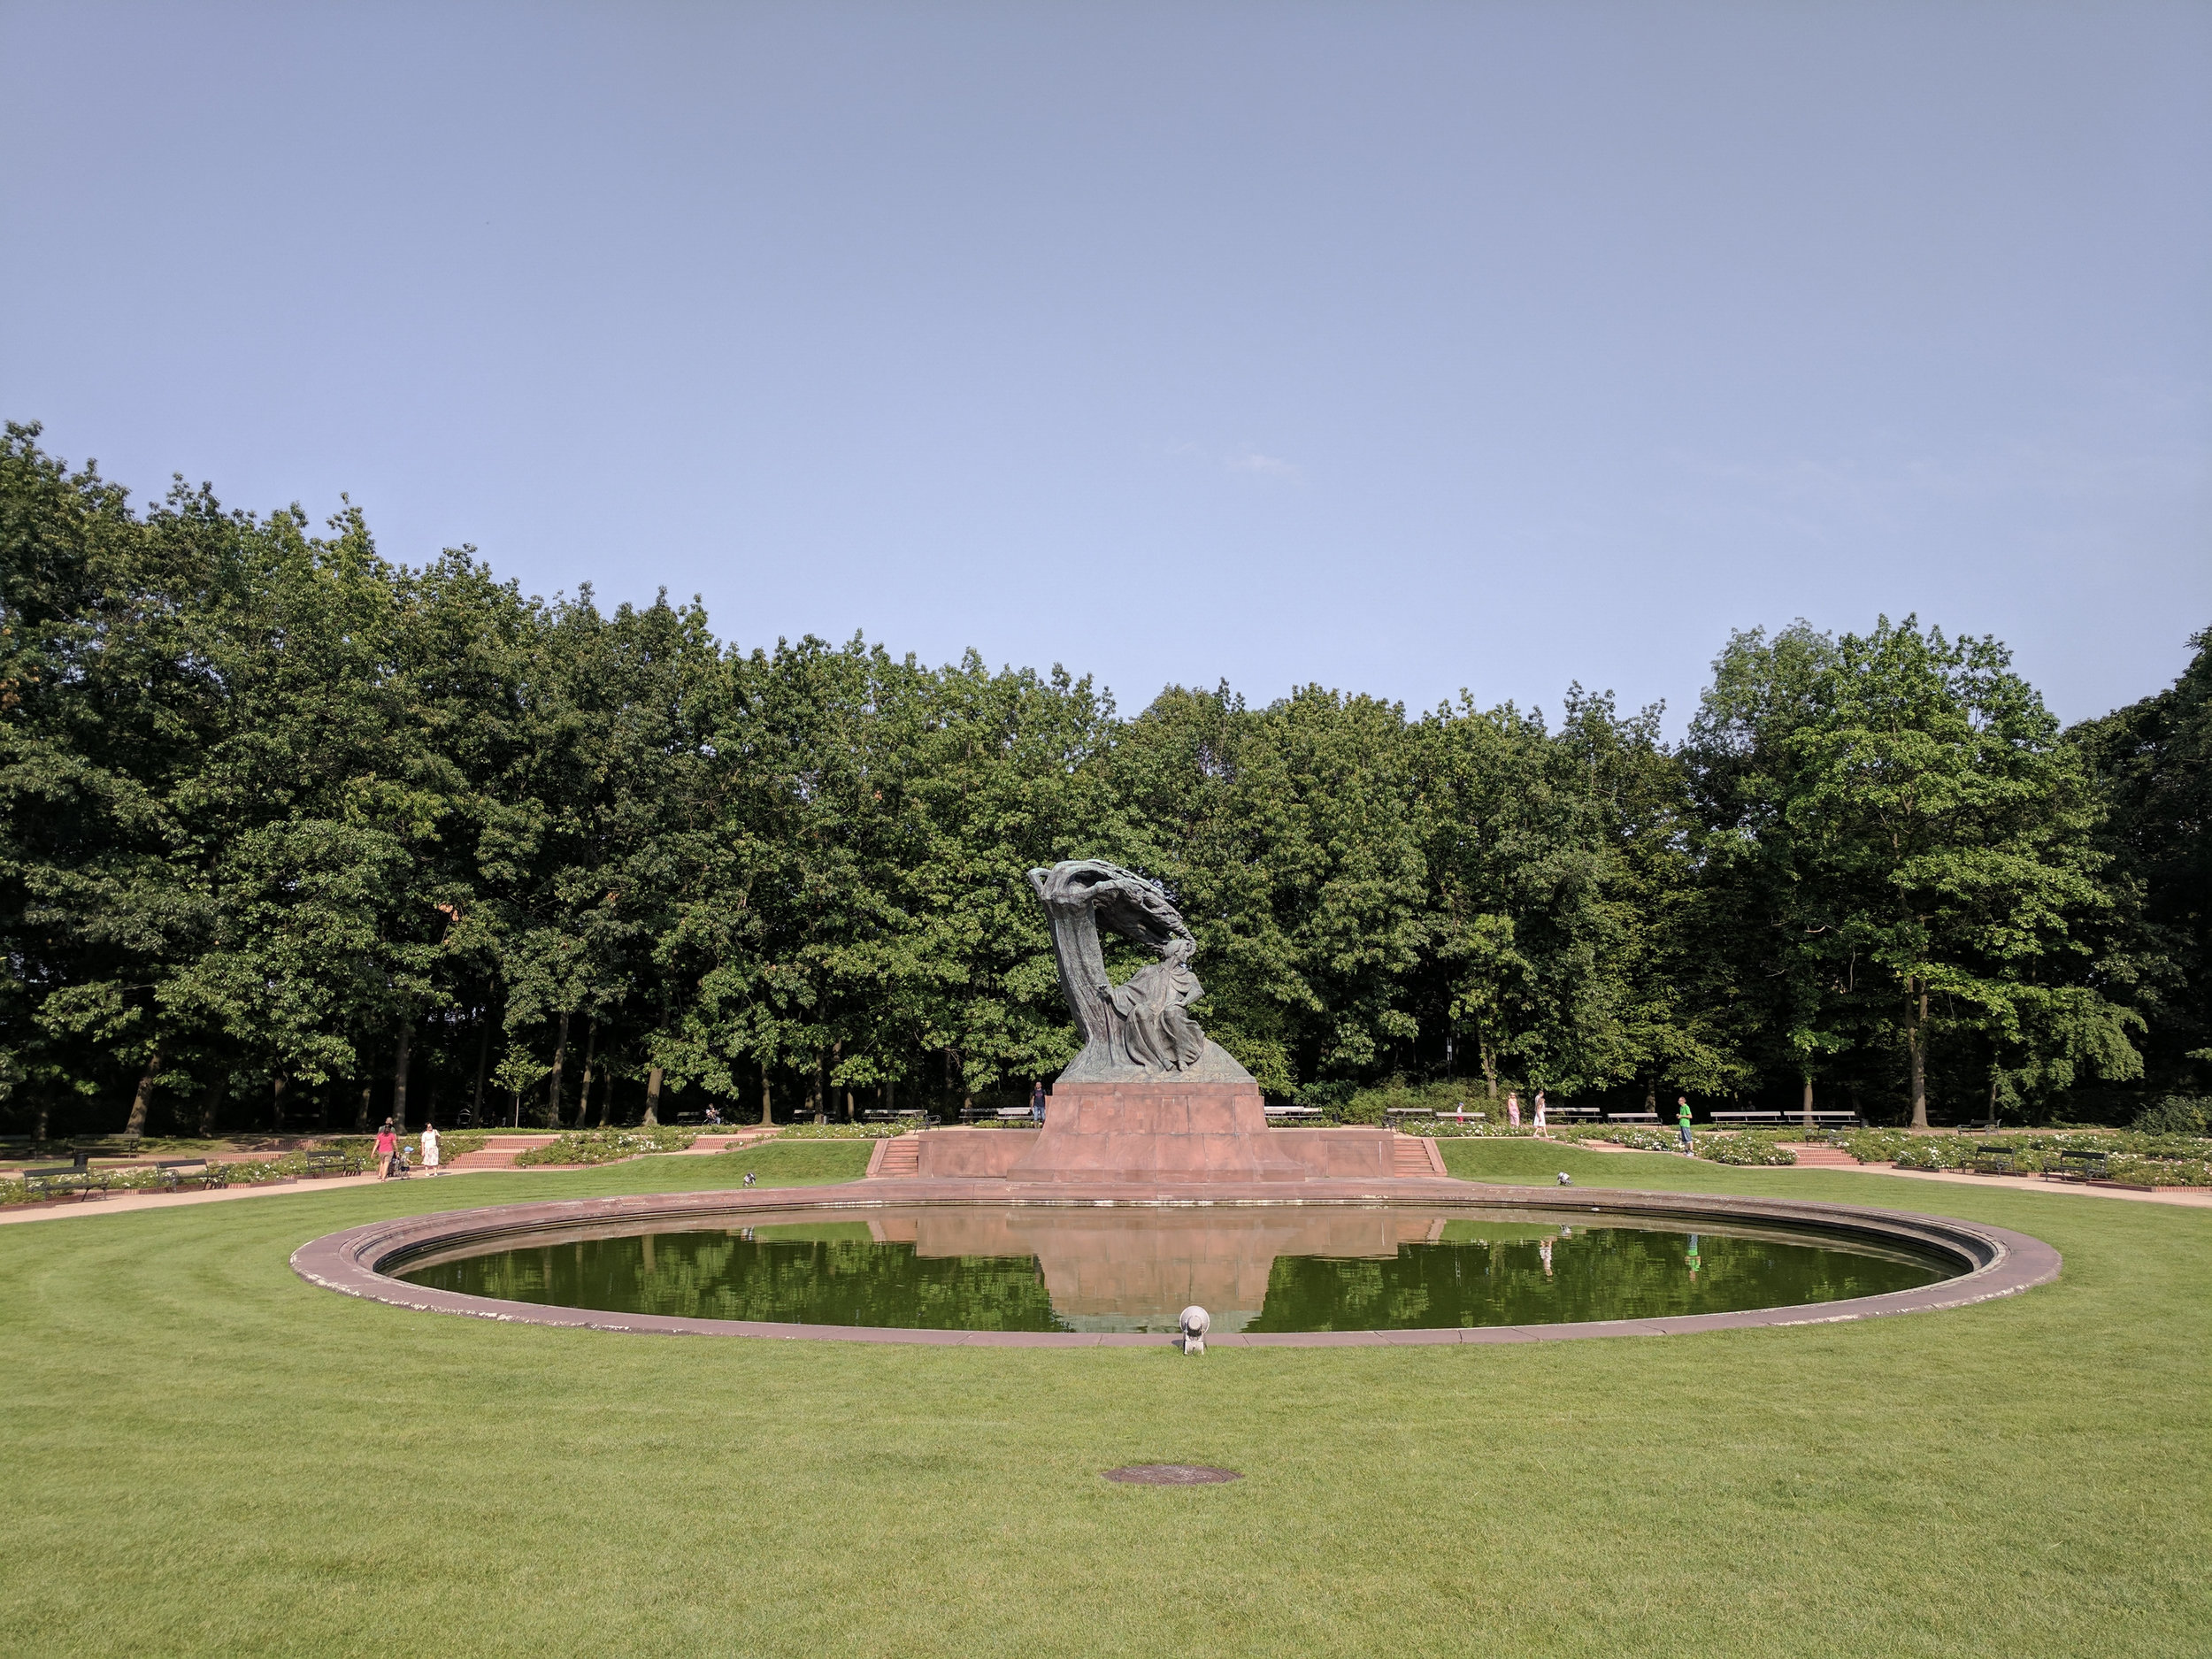 Frédéric Chopin Monument in Łazienki Park. The original statue was destroyed by the Germans during WWII in 1940. Luckily the mould for the bronze statue survived and a replica was erected in 1958.